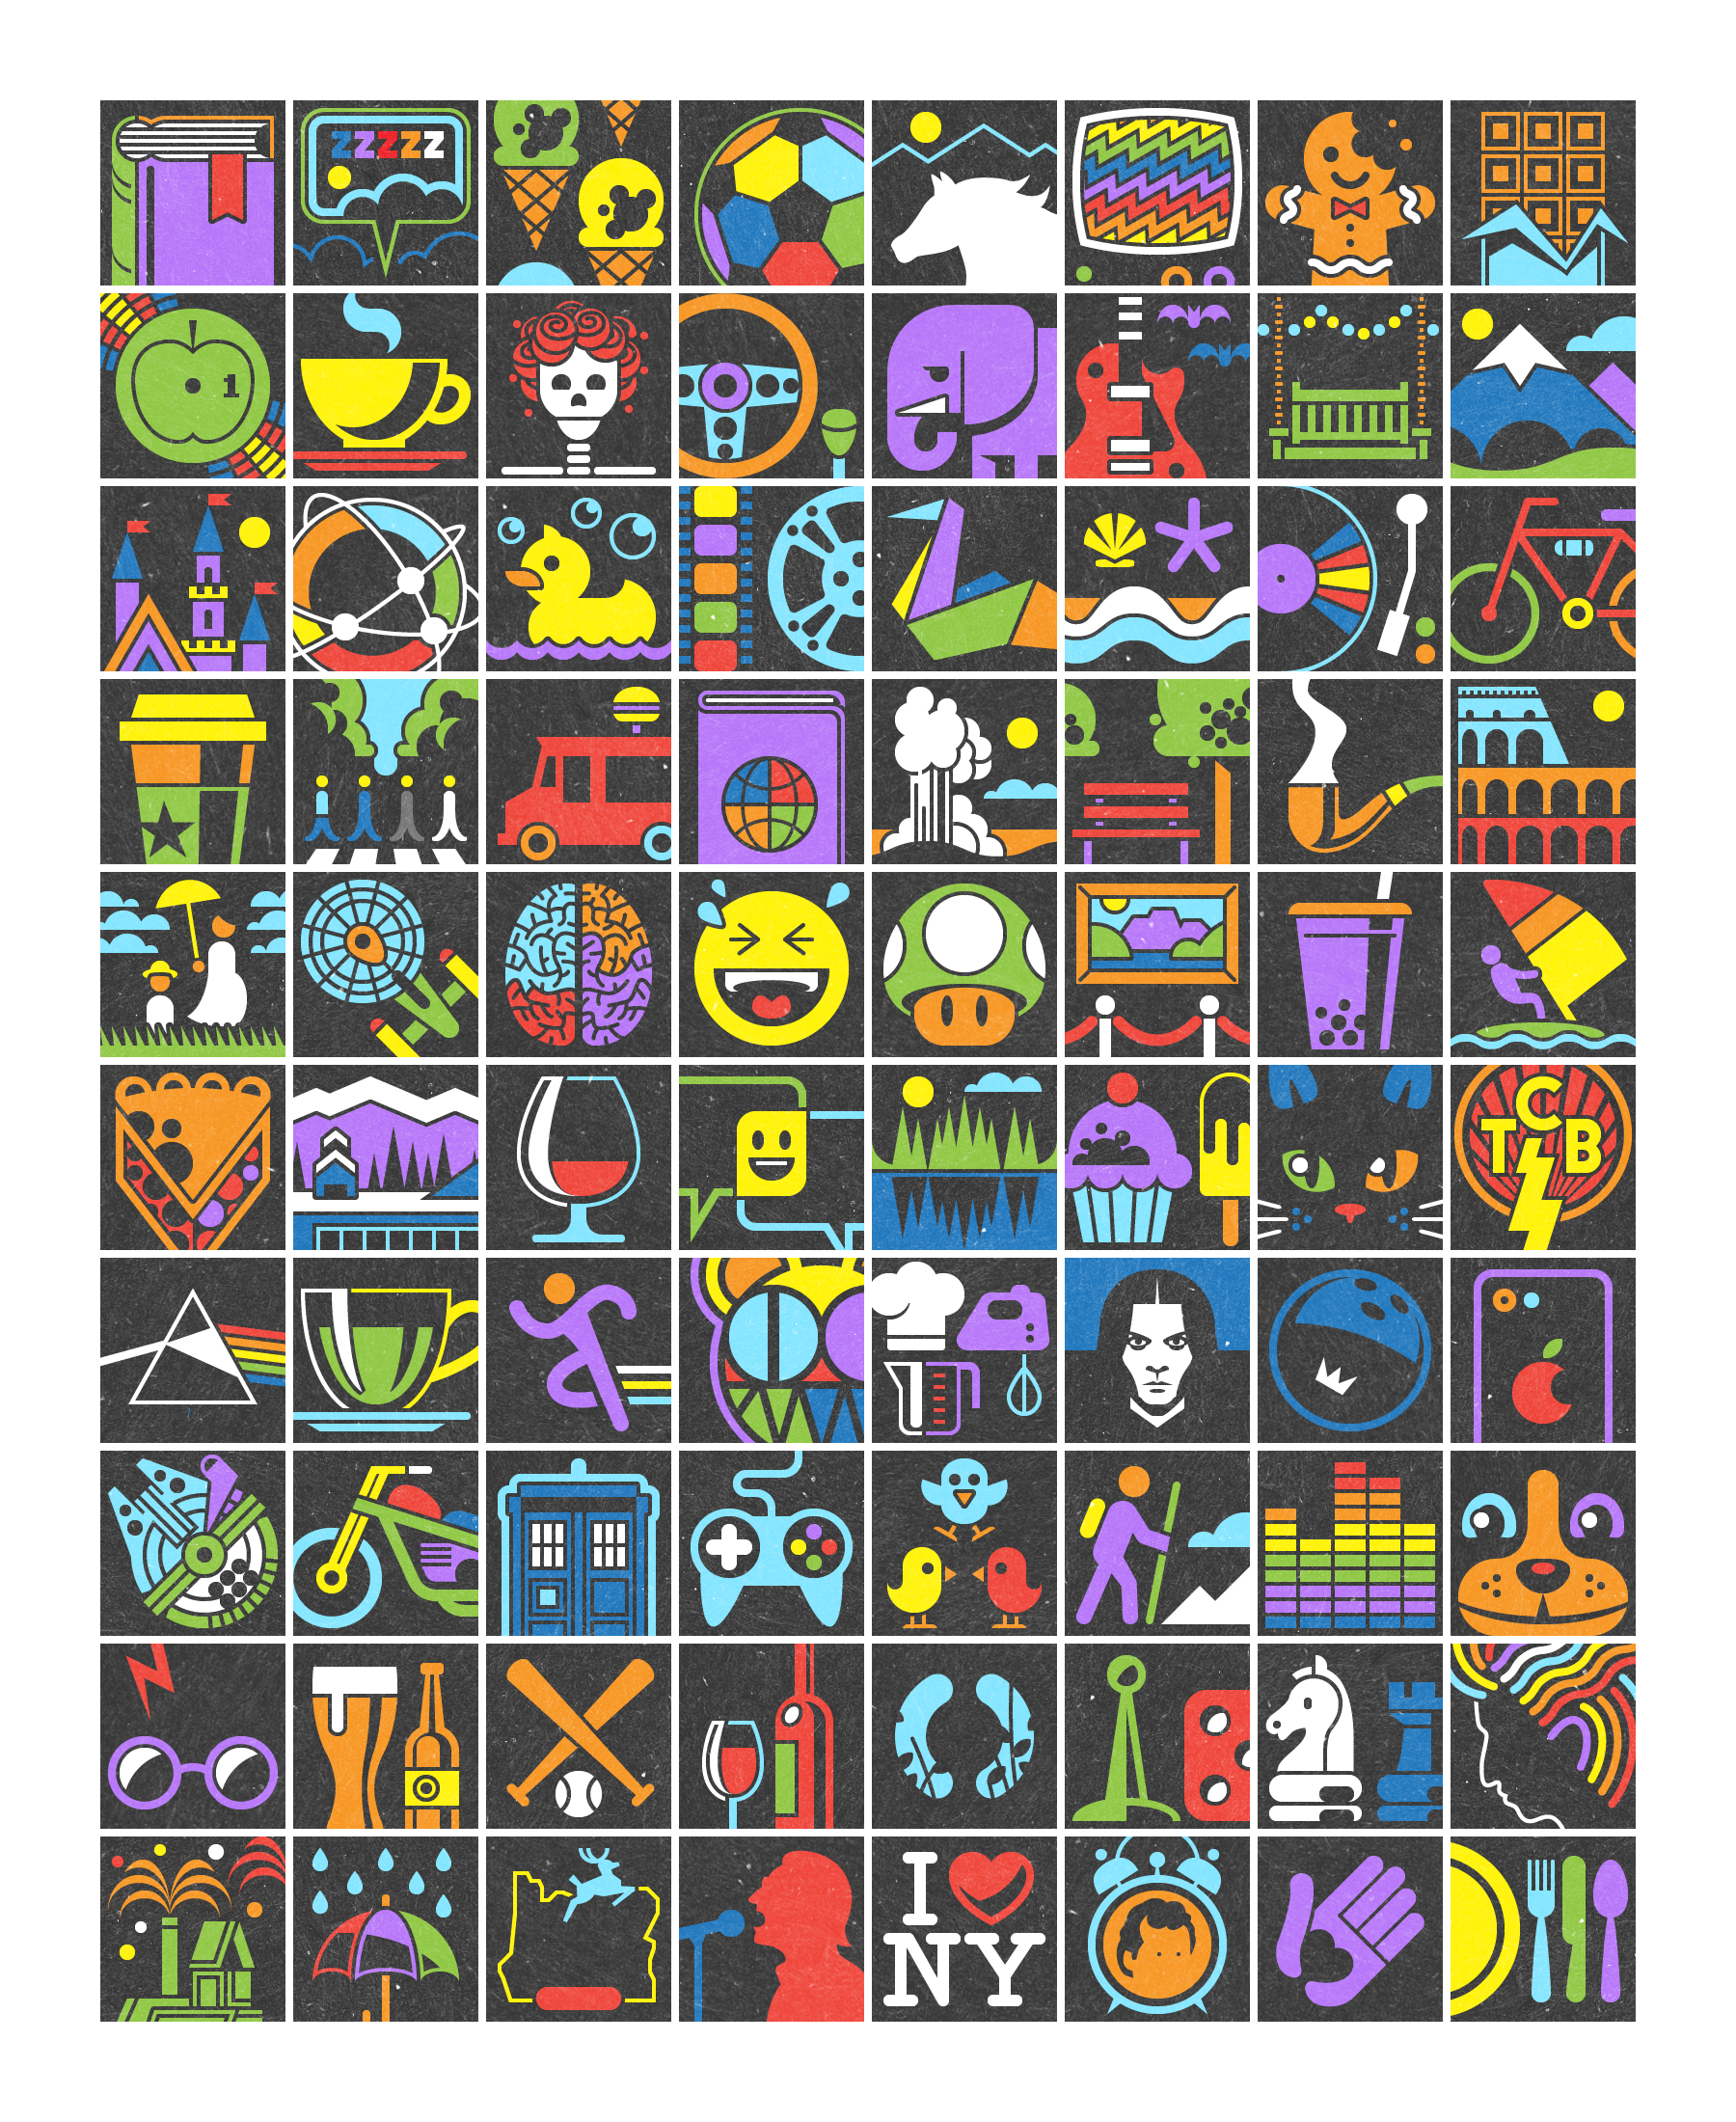 80 illustrated icons representing everything from cats and baseball to sleeping and Star Trek